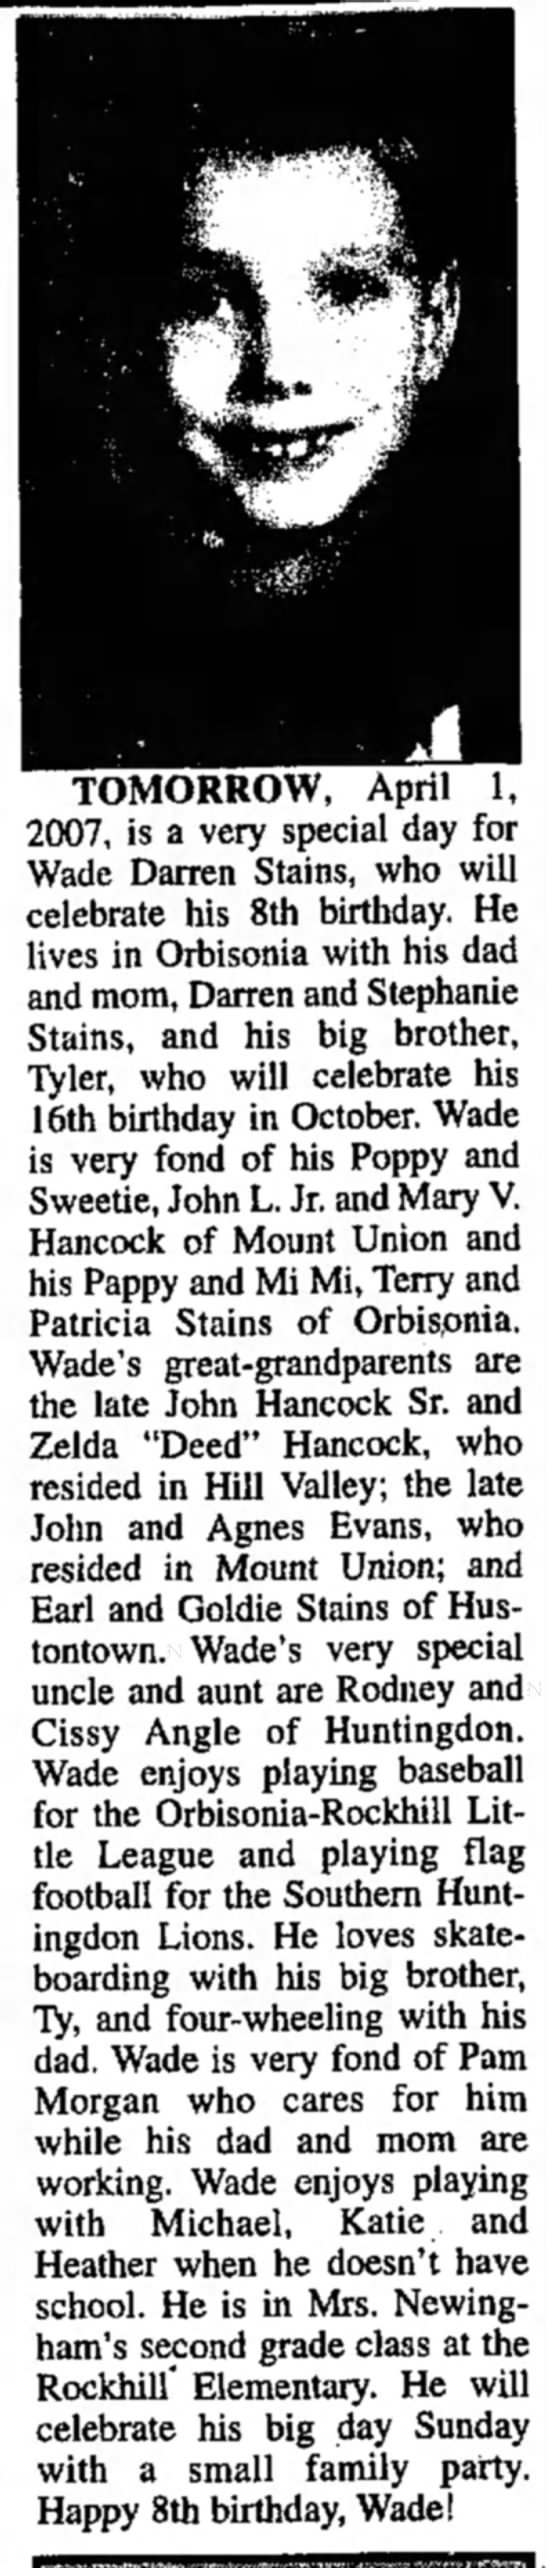 Wade Stains, John L. Hancock's grandson-TDN-p.10-31 March 2007 - | TOMORROW, April 1, 2007, is a very special...